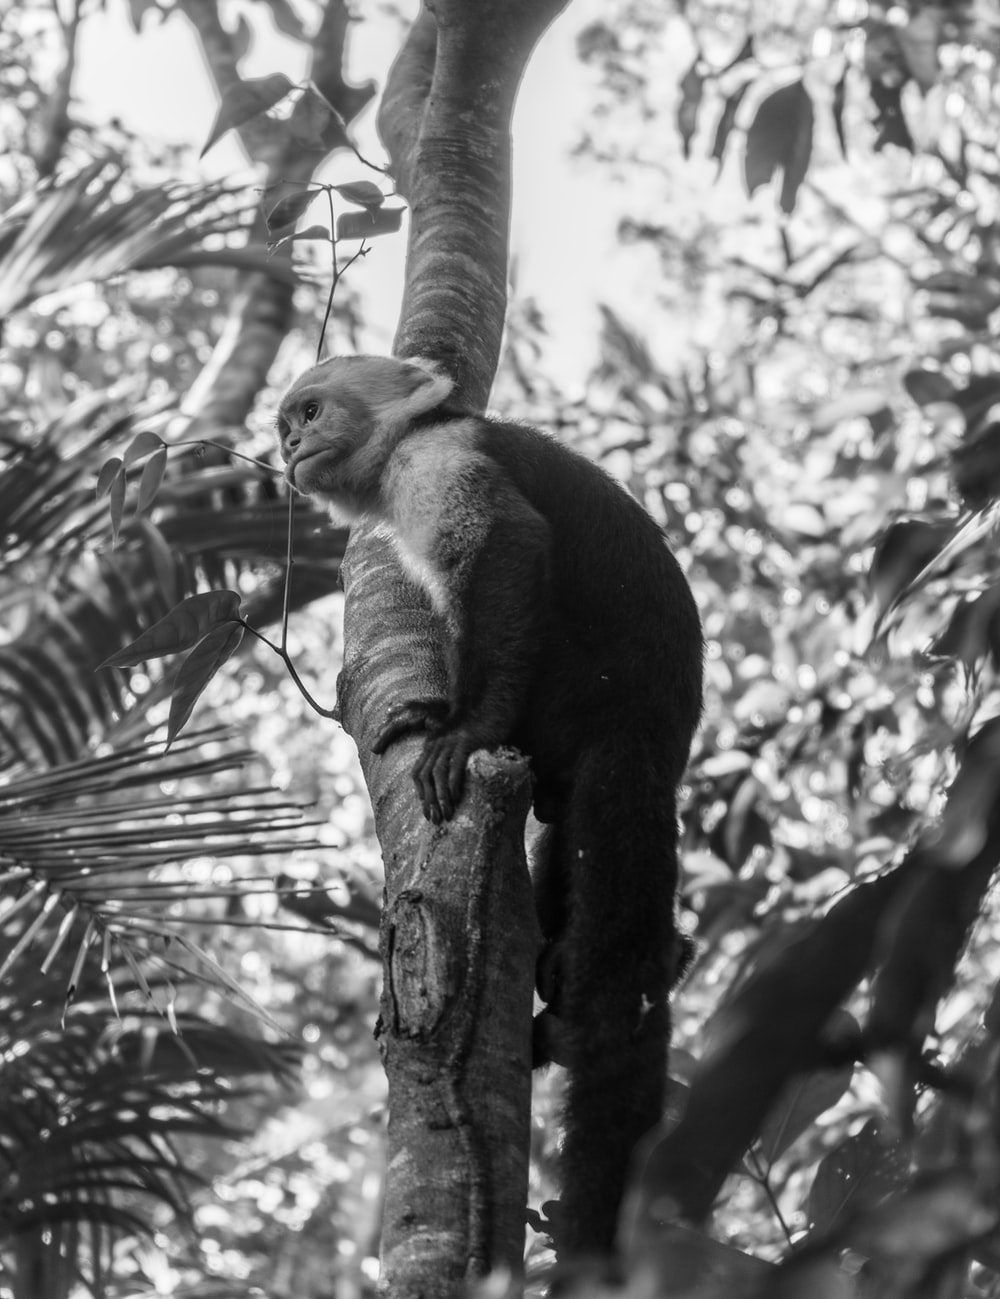 monkey on tree branch in grayscale photography